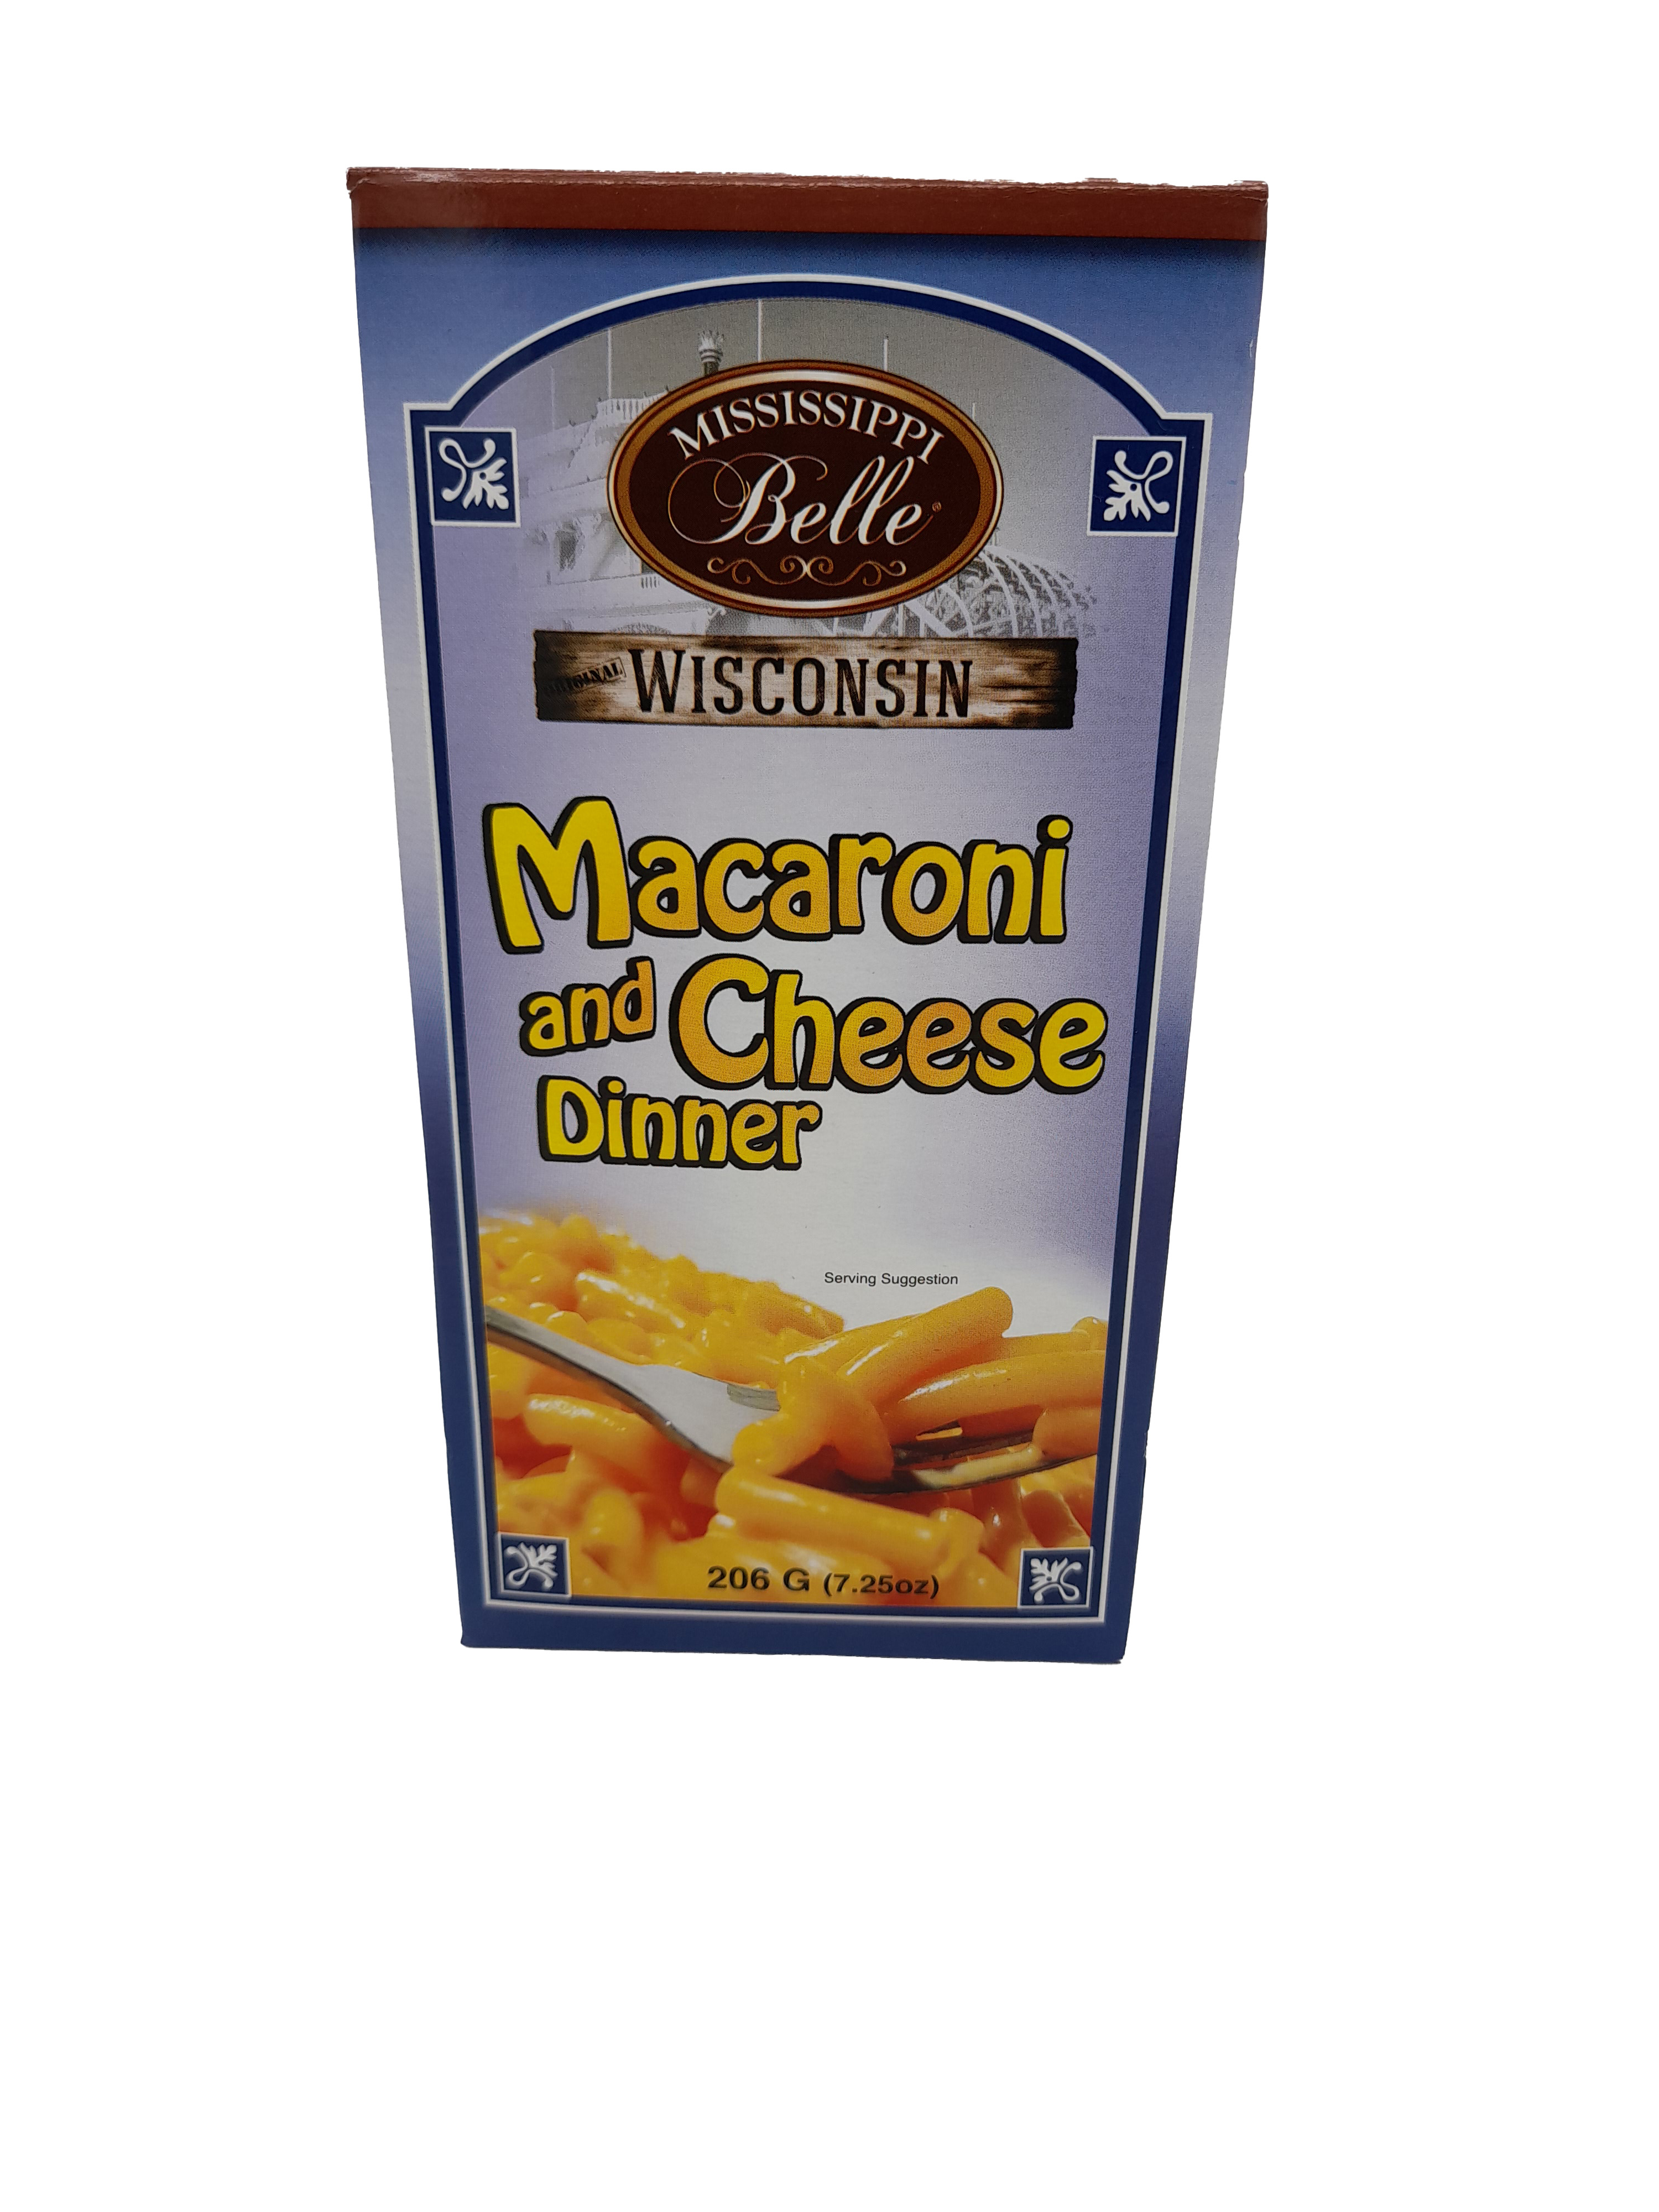 MB Macaroni and Cheese Dinner